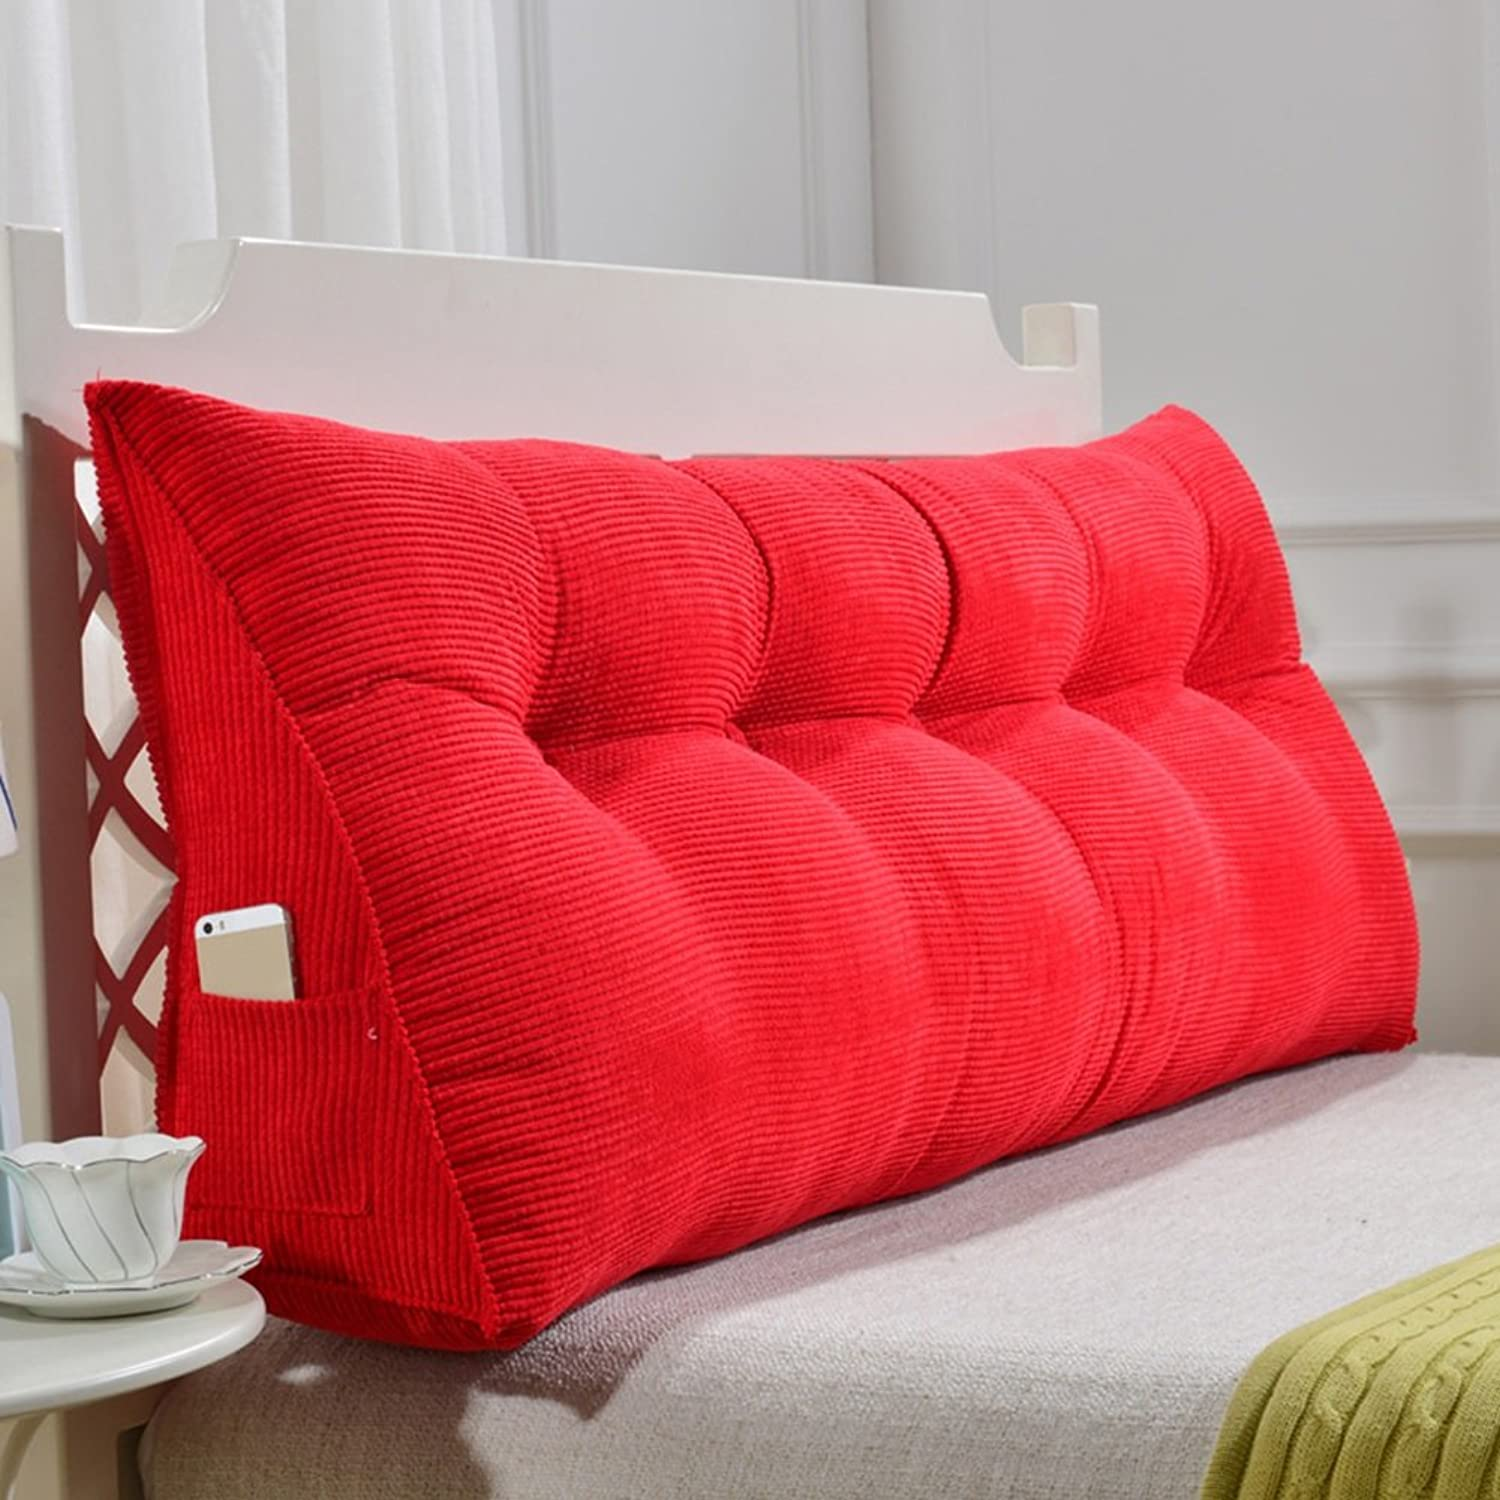 WENZHE Upholstered Fabric Headboard Bedside Cushion Pads Cover Bed Wedges Backrest Waist Pad Cloth Art Soft Case Home Bedroom Large Back Sofa Pillow Multifunction Washable, Independent Liner, 5 colors, 9 Sizes Optional ( color   Red , Size   90×50×20cm )